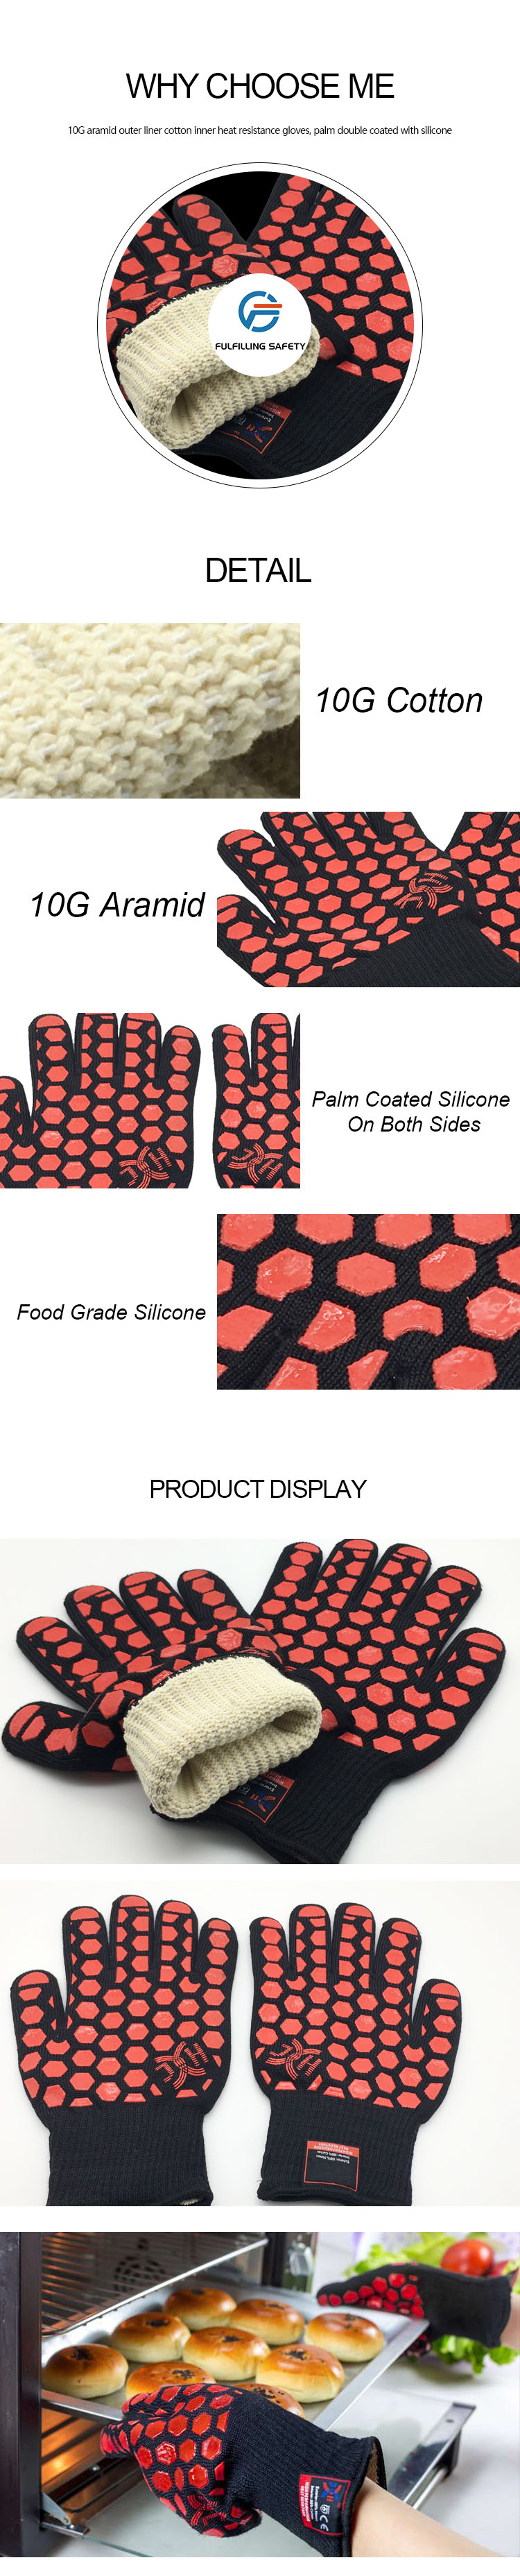 High quality insulated silicone extreme heat resistant BBQ set gloves